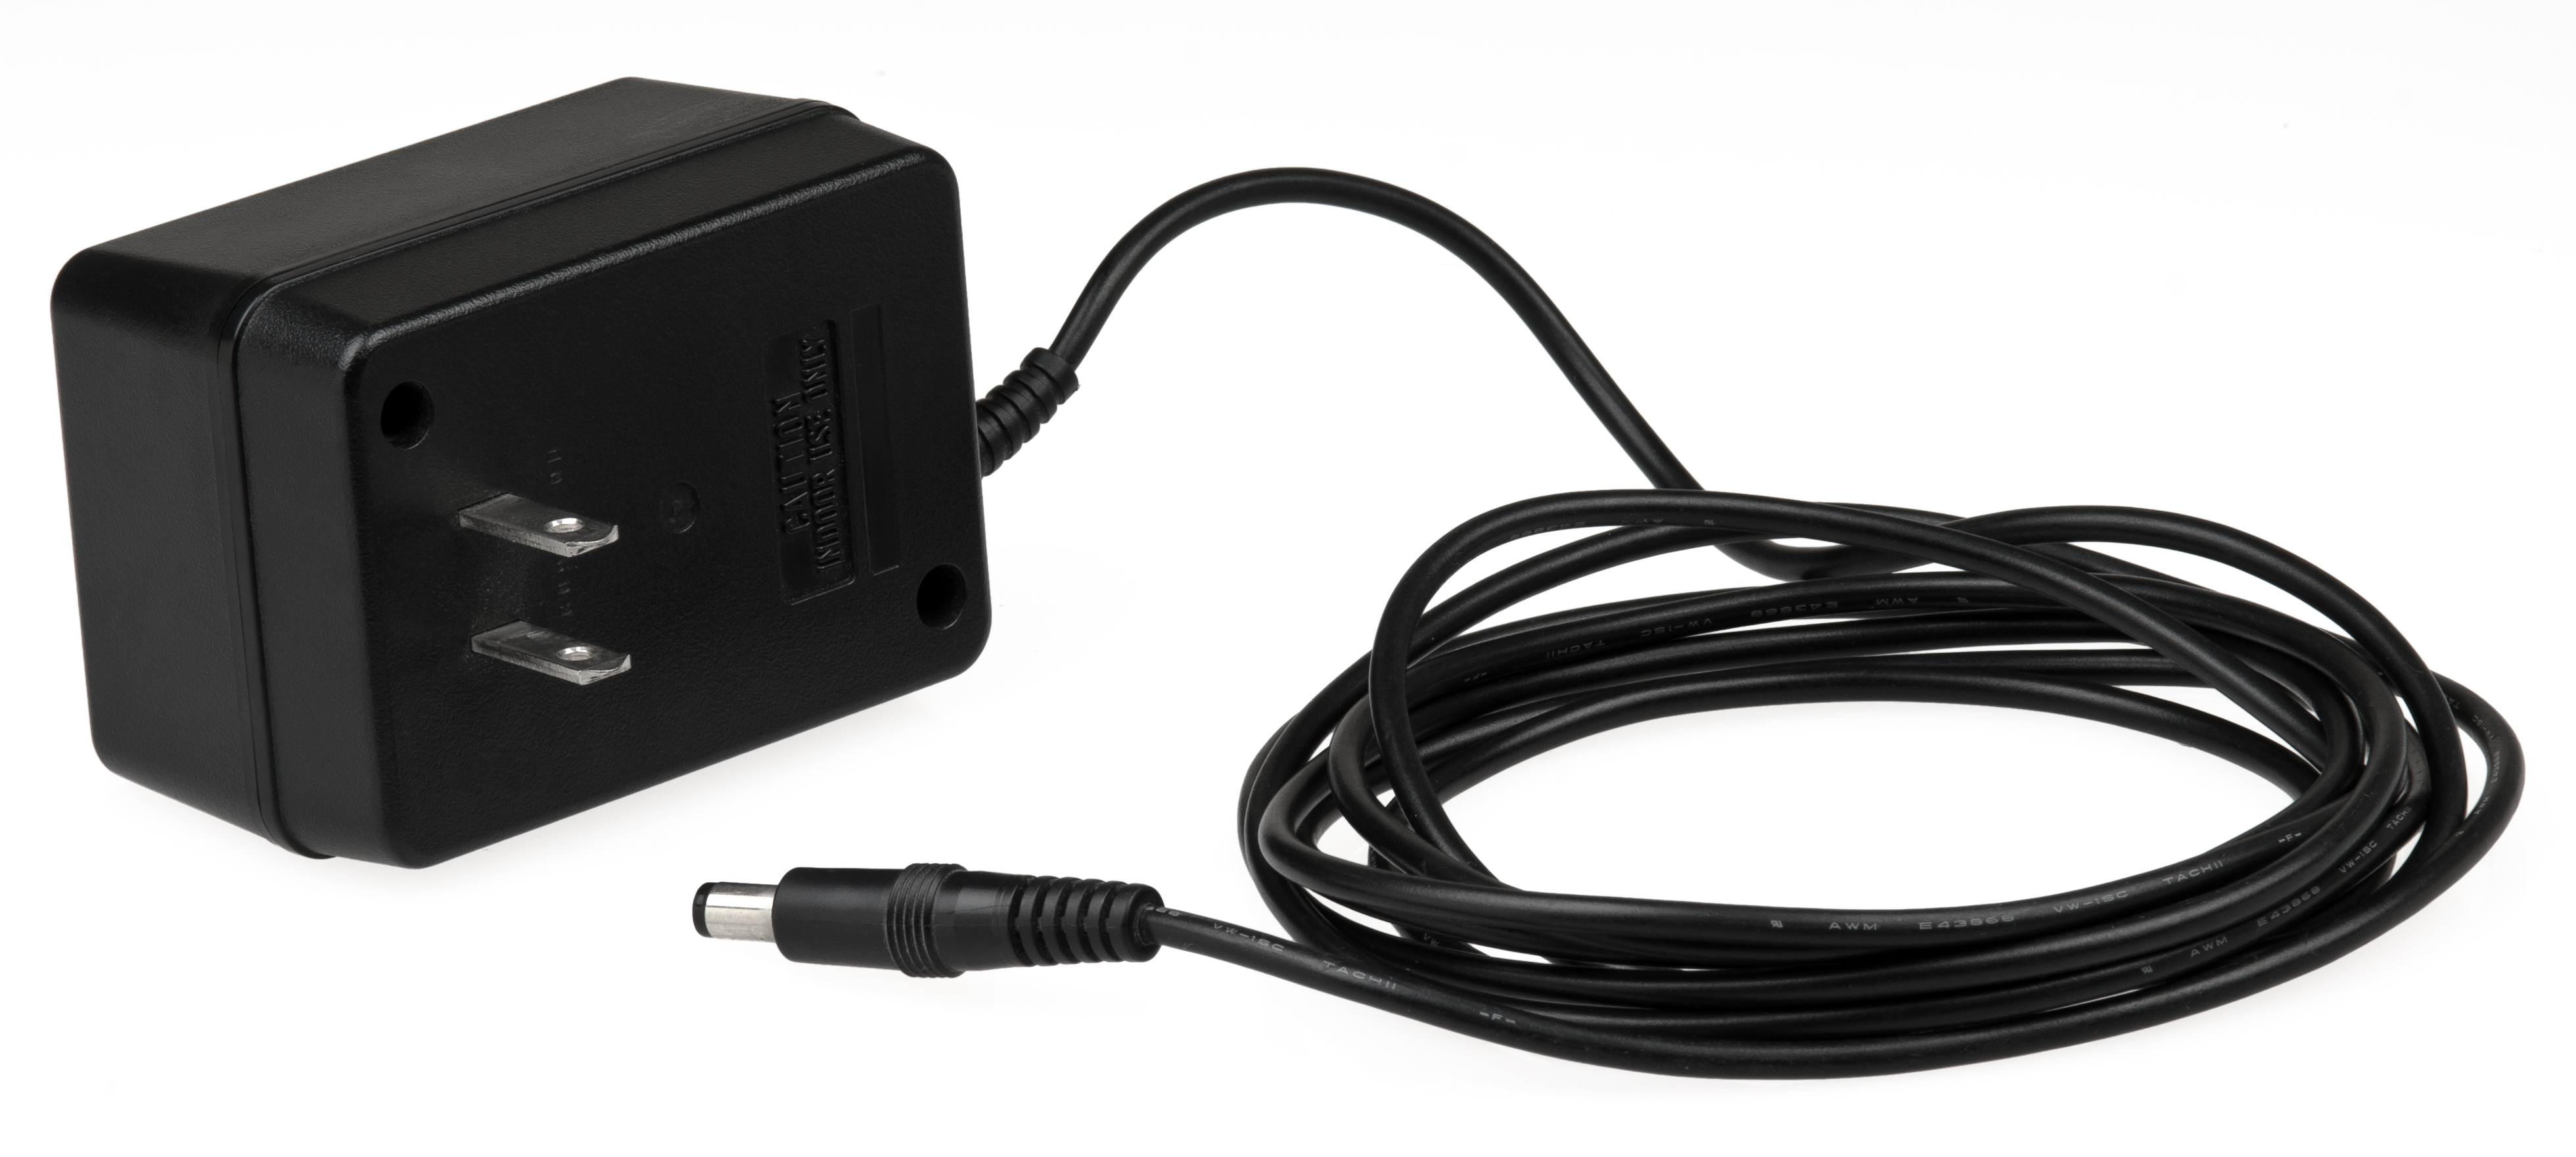 Image of a travel power adapter. Adapters and chargers are essential gadgets for traveling.